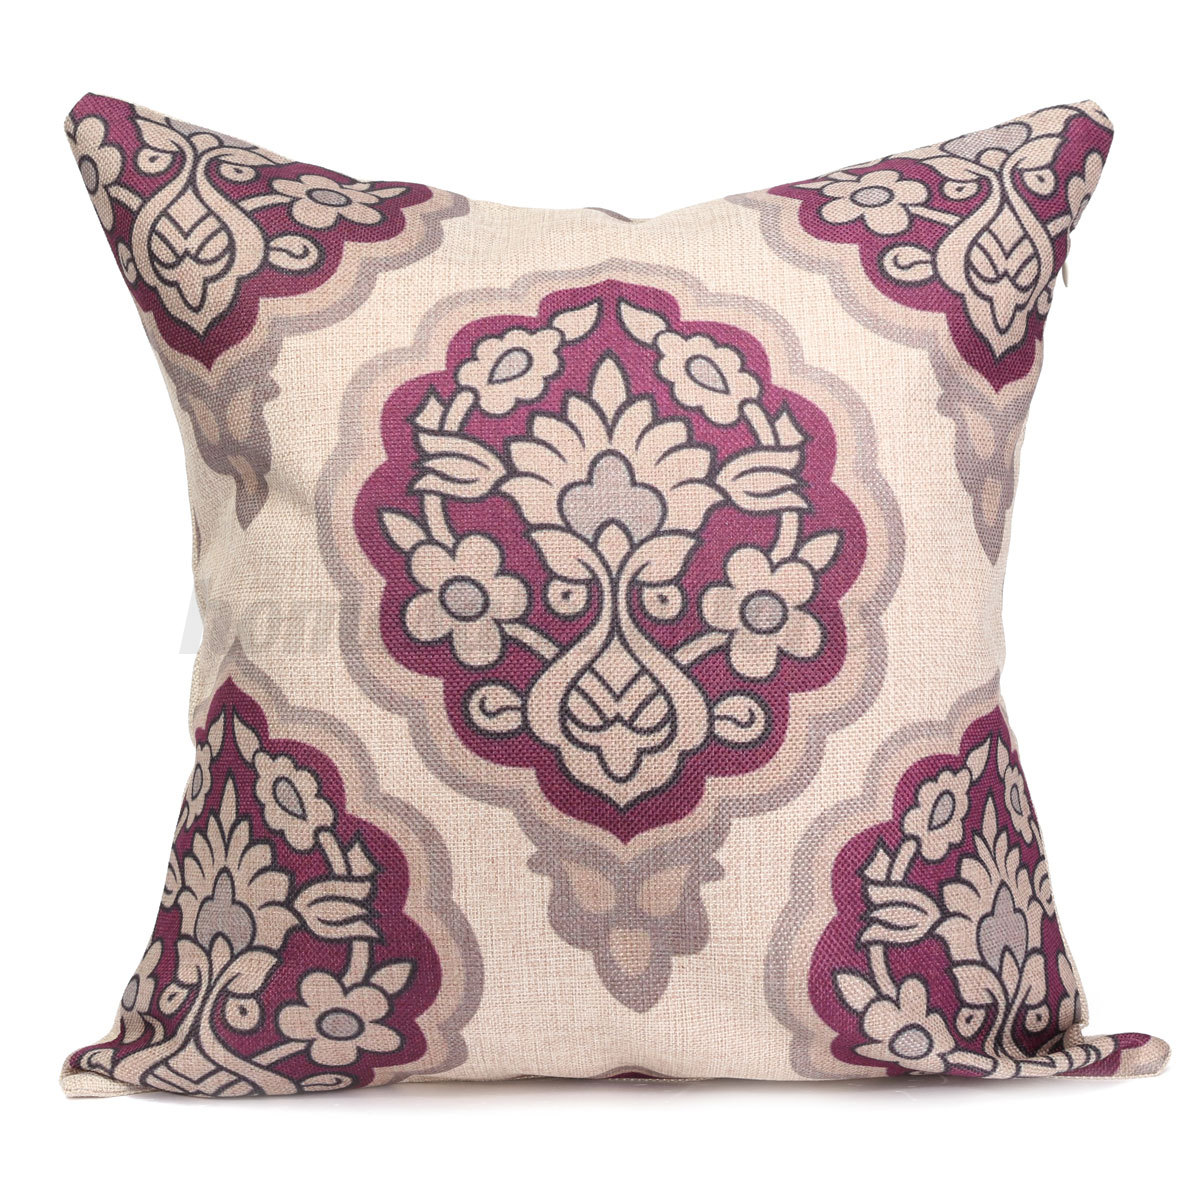 Vintage Throw Pillow Covers : Casual Style Vintage Cushion Cover Throw Pillow Covers for Home Sofa Decoration eBay